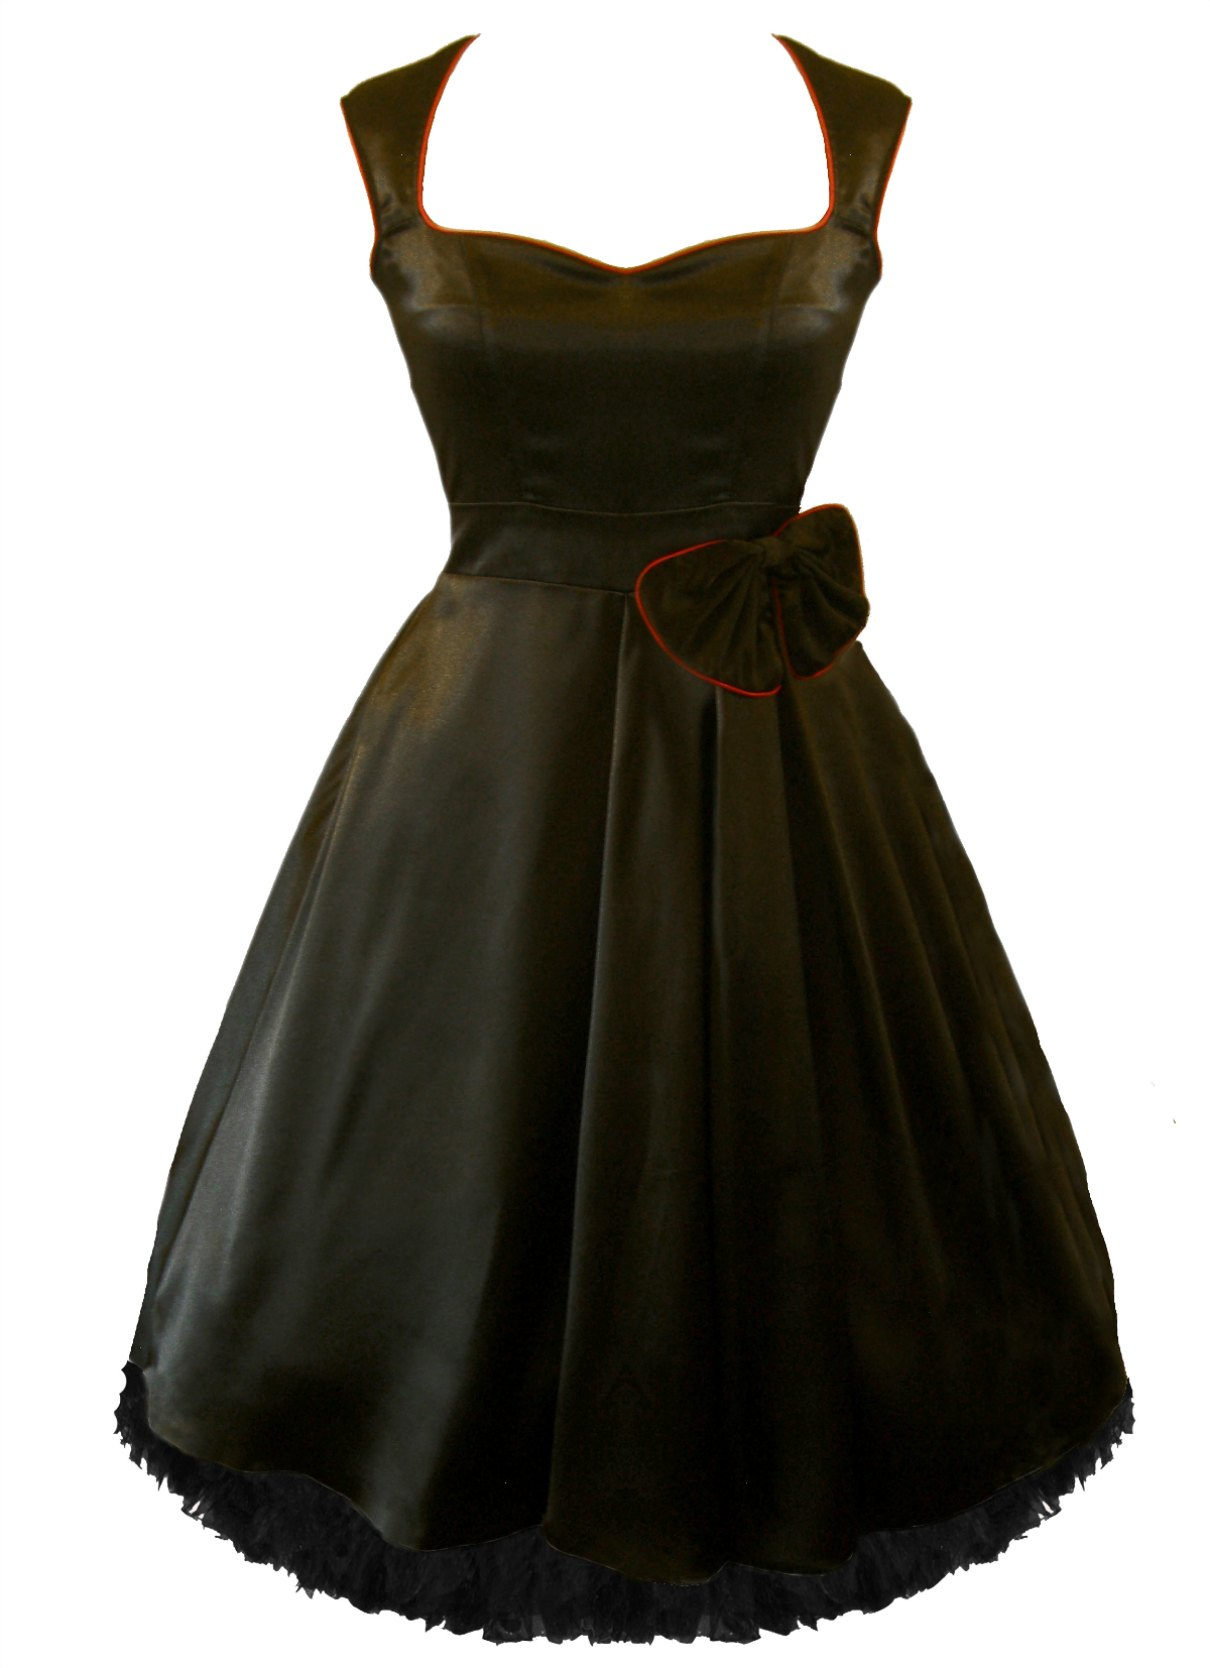 Hourglass Vintage Dresses